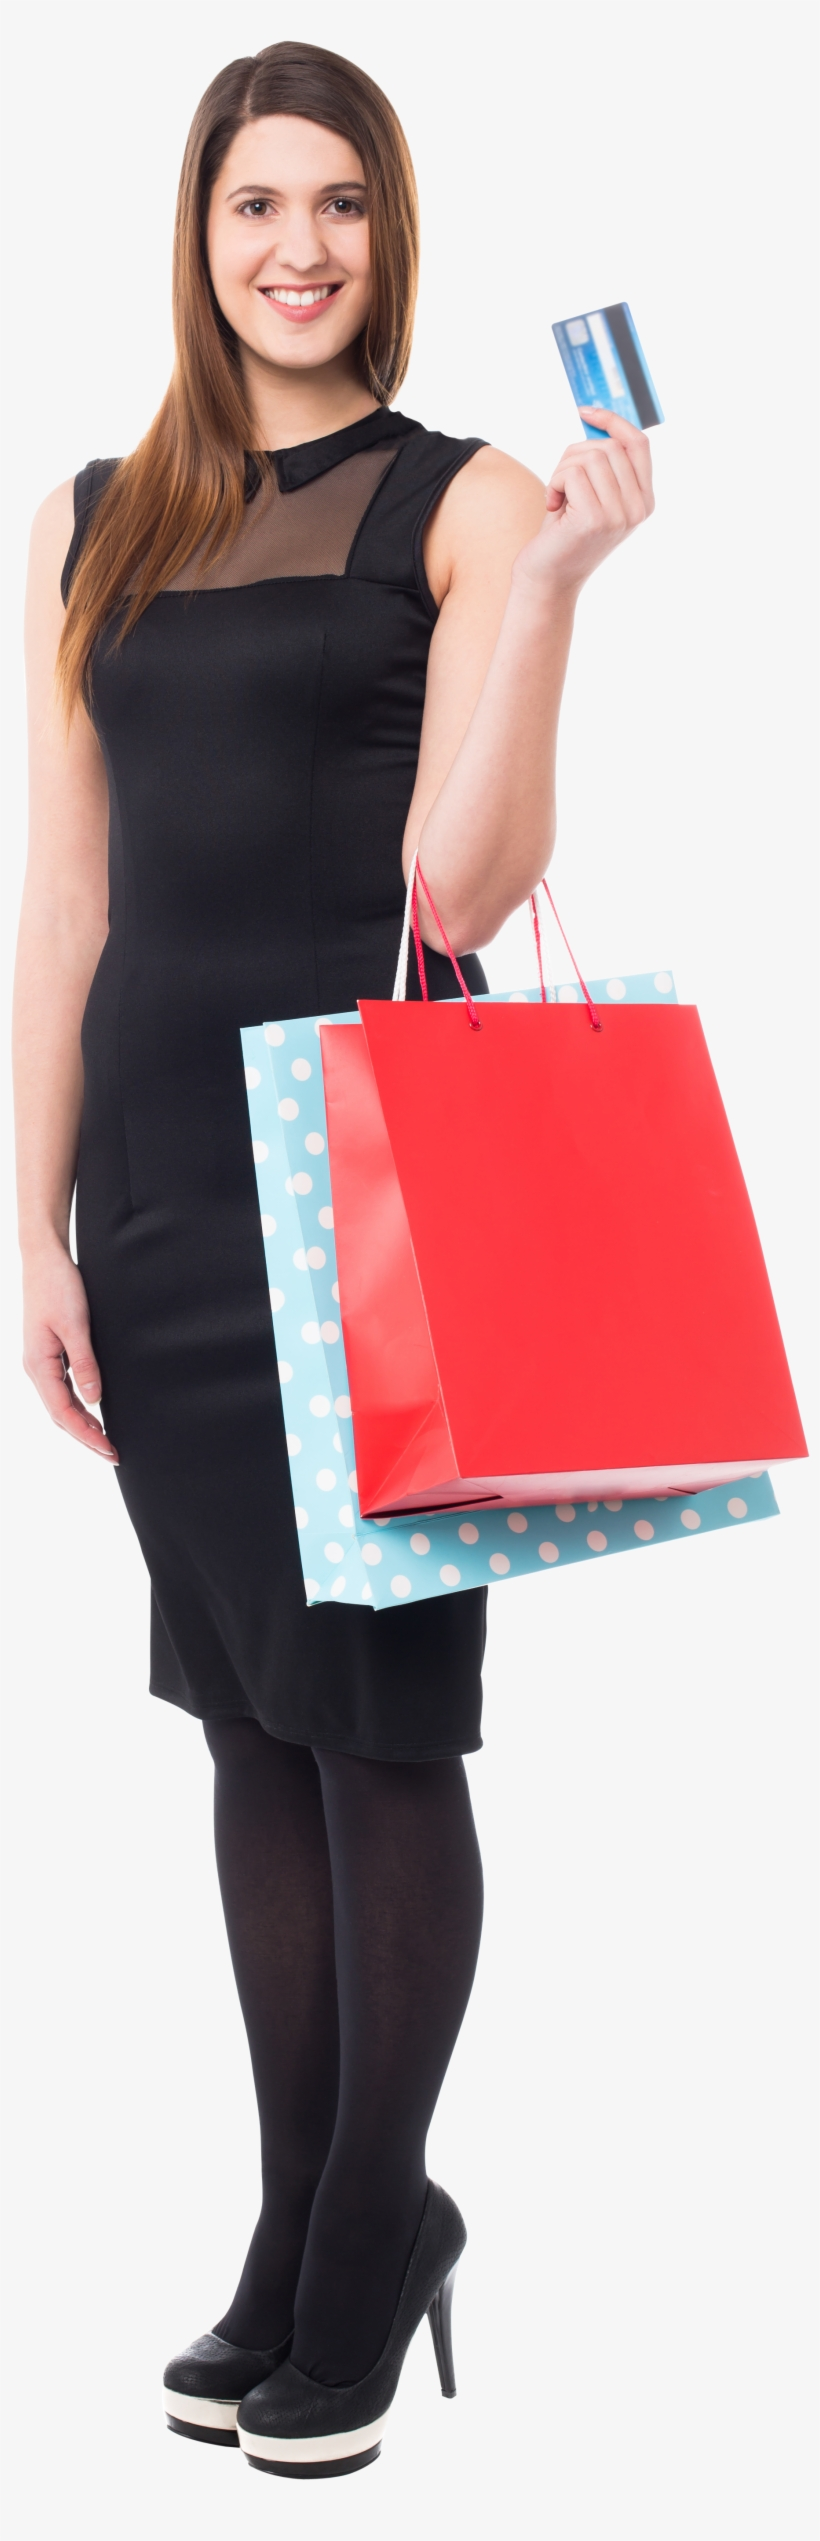 Women Shopping Download Free Png Image - Woman Shopping Bag Png, transparent png #1502289